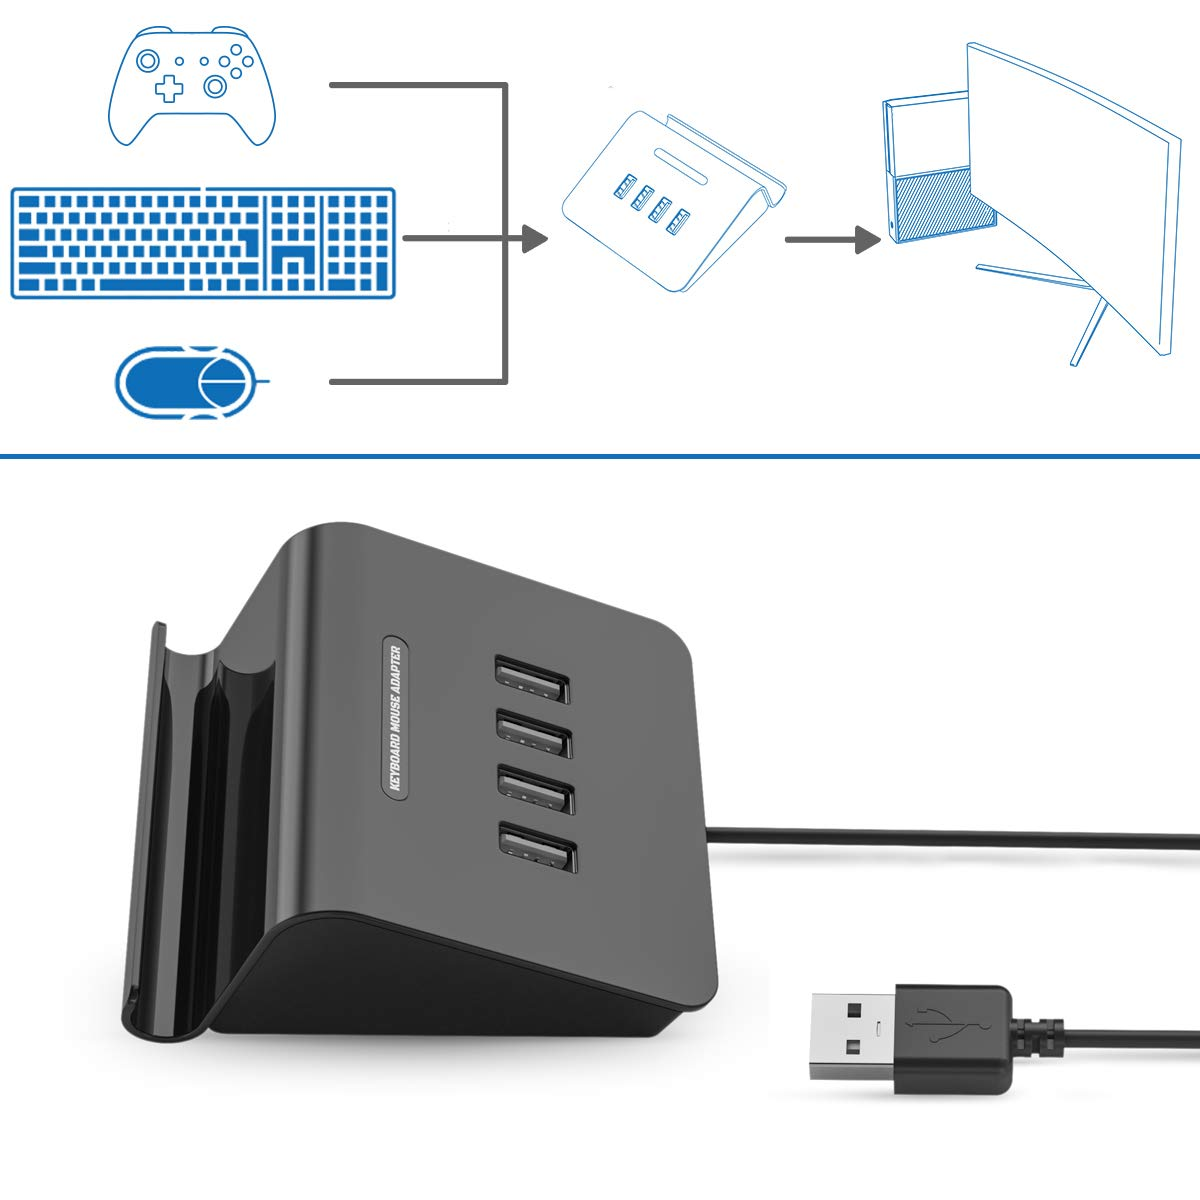 Fortnite Xbox Switch To Keyboard And Mouse Ifyoo Kmax1 Keyboard And Mouse Adapter Converter For Xbox One Ps4 Switch Compatible With Fortnite Pubg H1z1 And Other Shooting Games Buy Online In Morocco At Desertcart Ma Productid 79485981